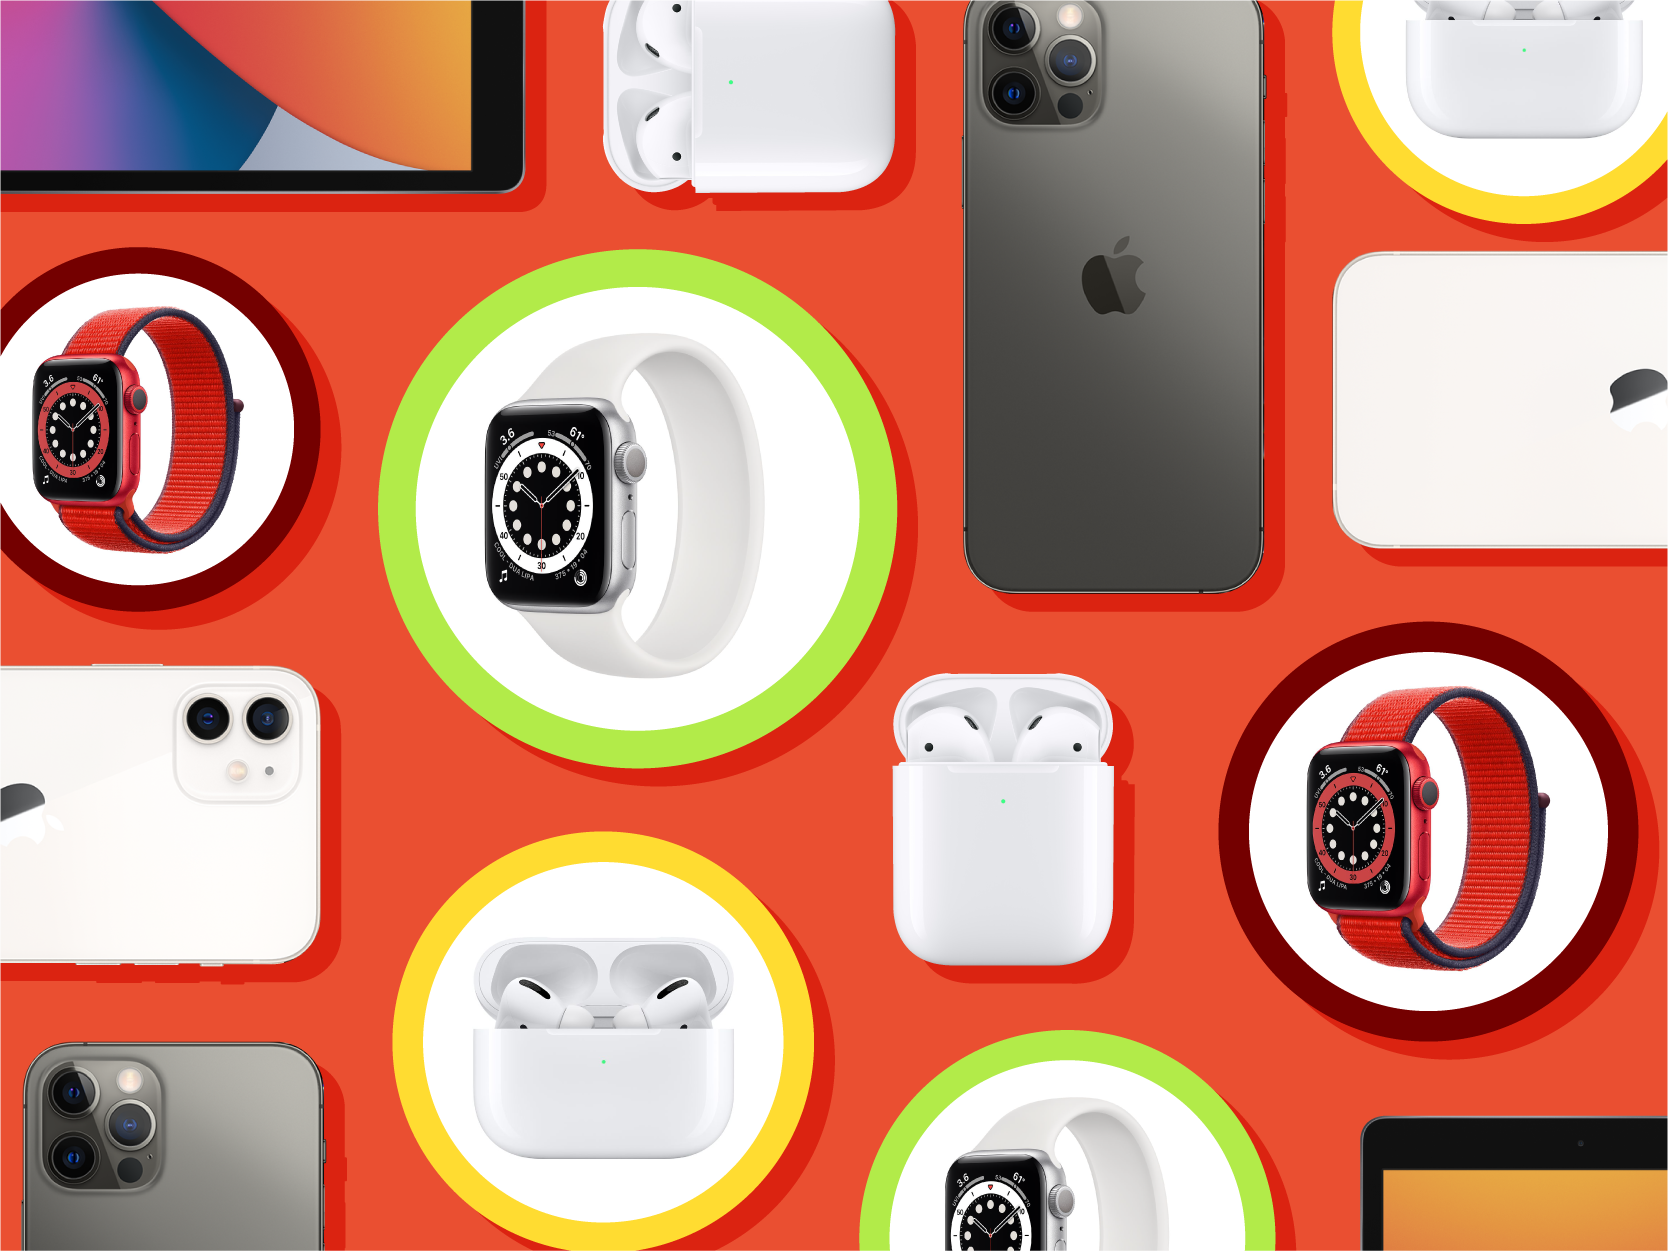 Apple Black Friday deals on AirPods, Apple Watches, and more devices are available now ahead of November 27 — here are the best discounts